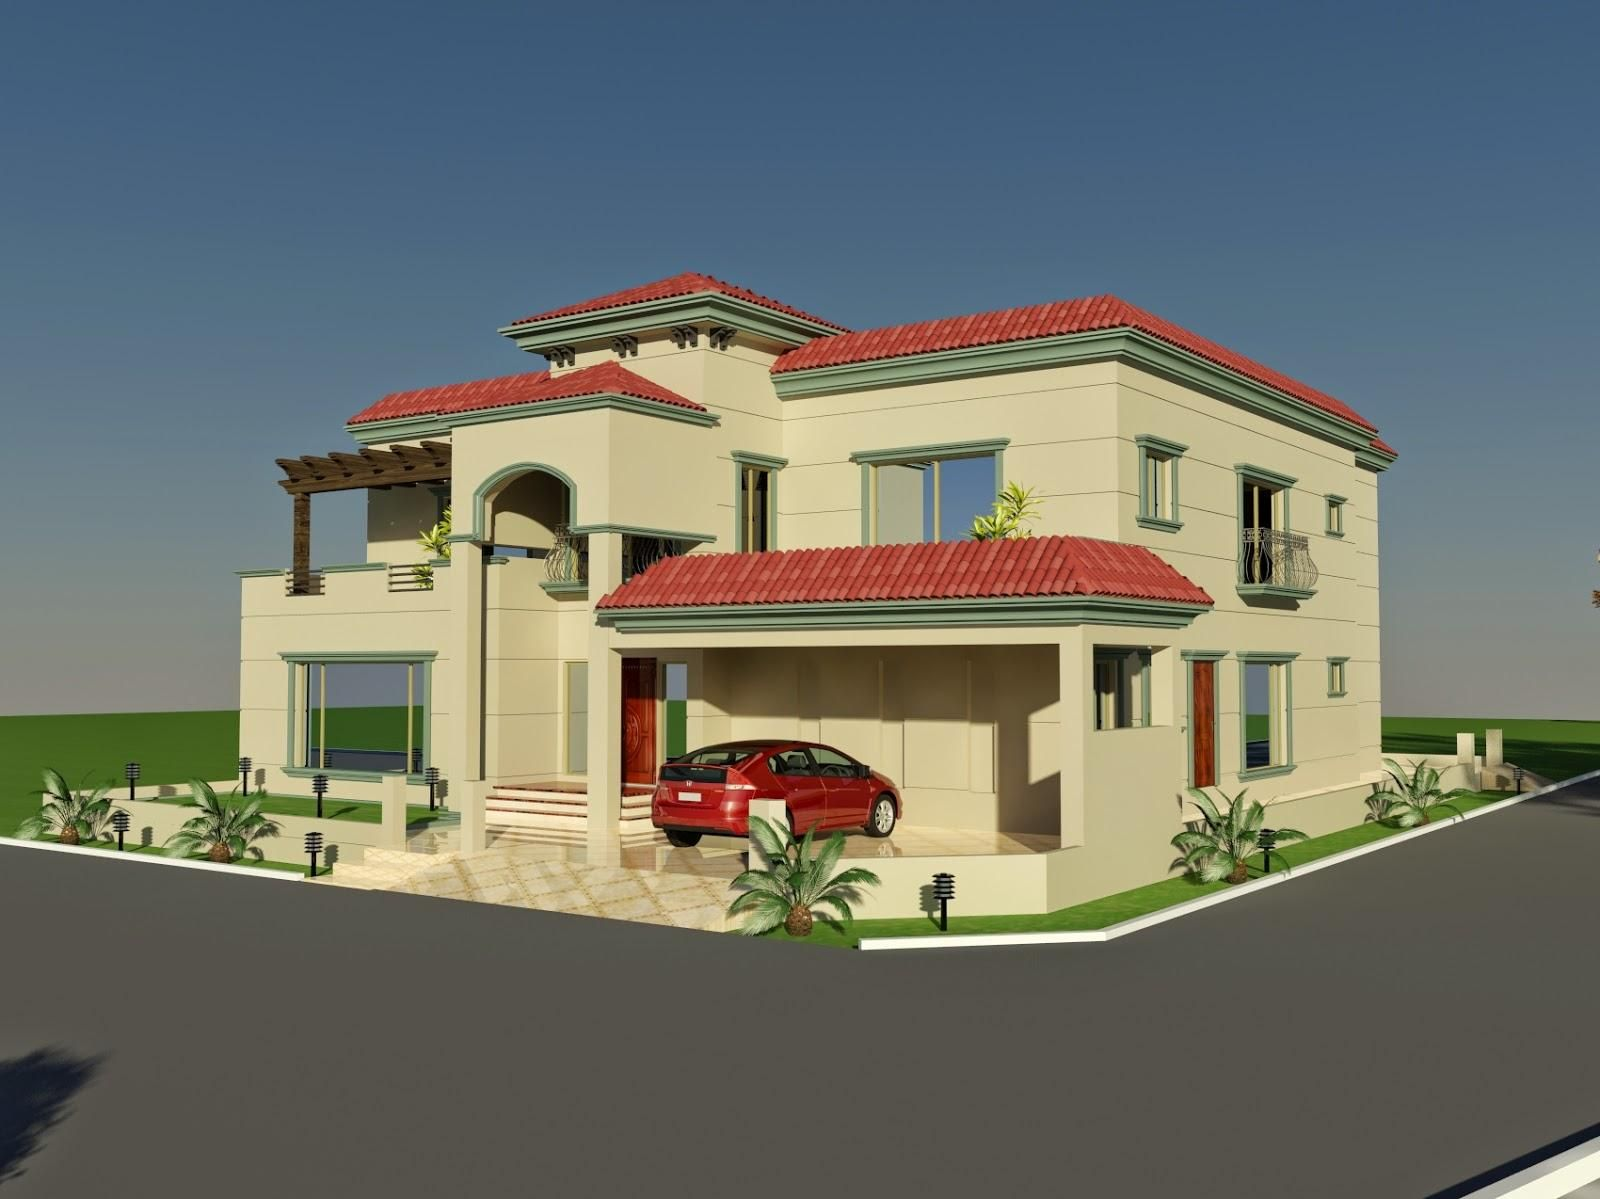 App di design per rinnovare casa bigodino for Beautiful villas images